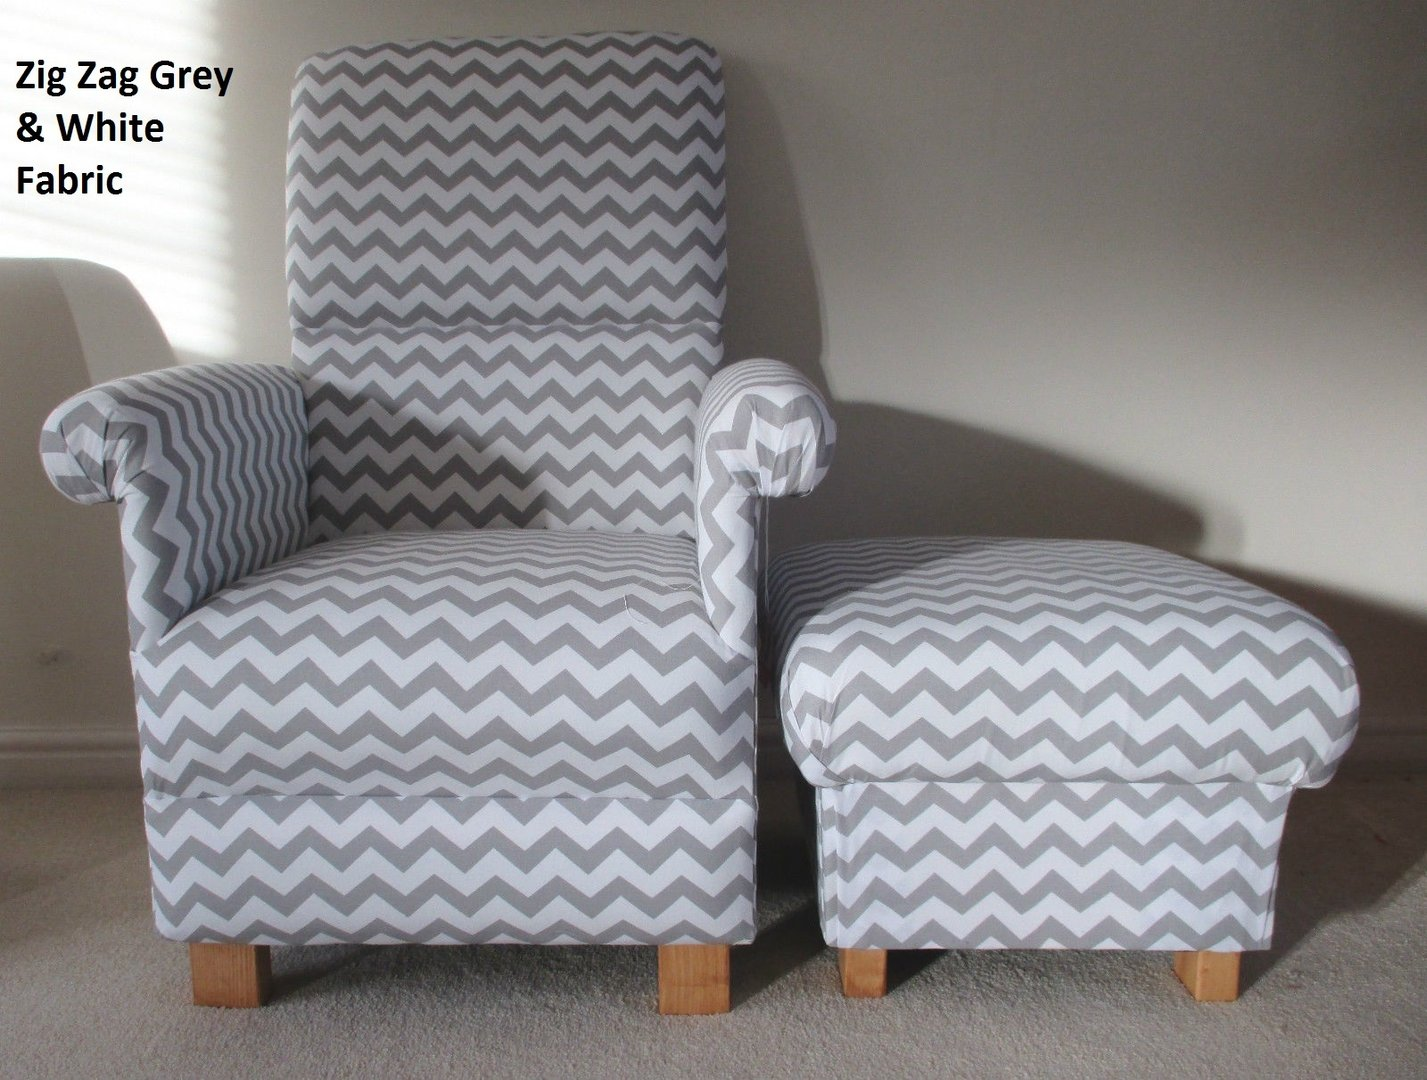 Grey Nursery Chair Zig Zag Grey And White Fabric Adult Chair And Footstool